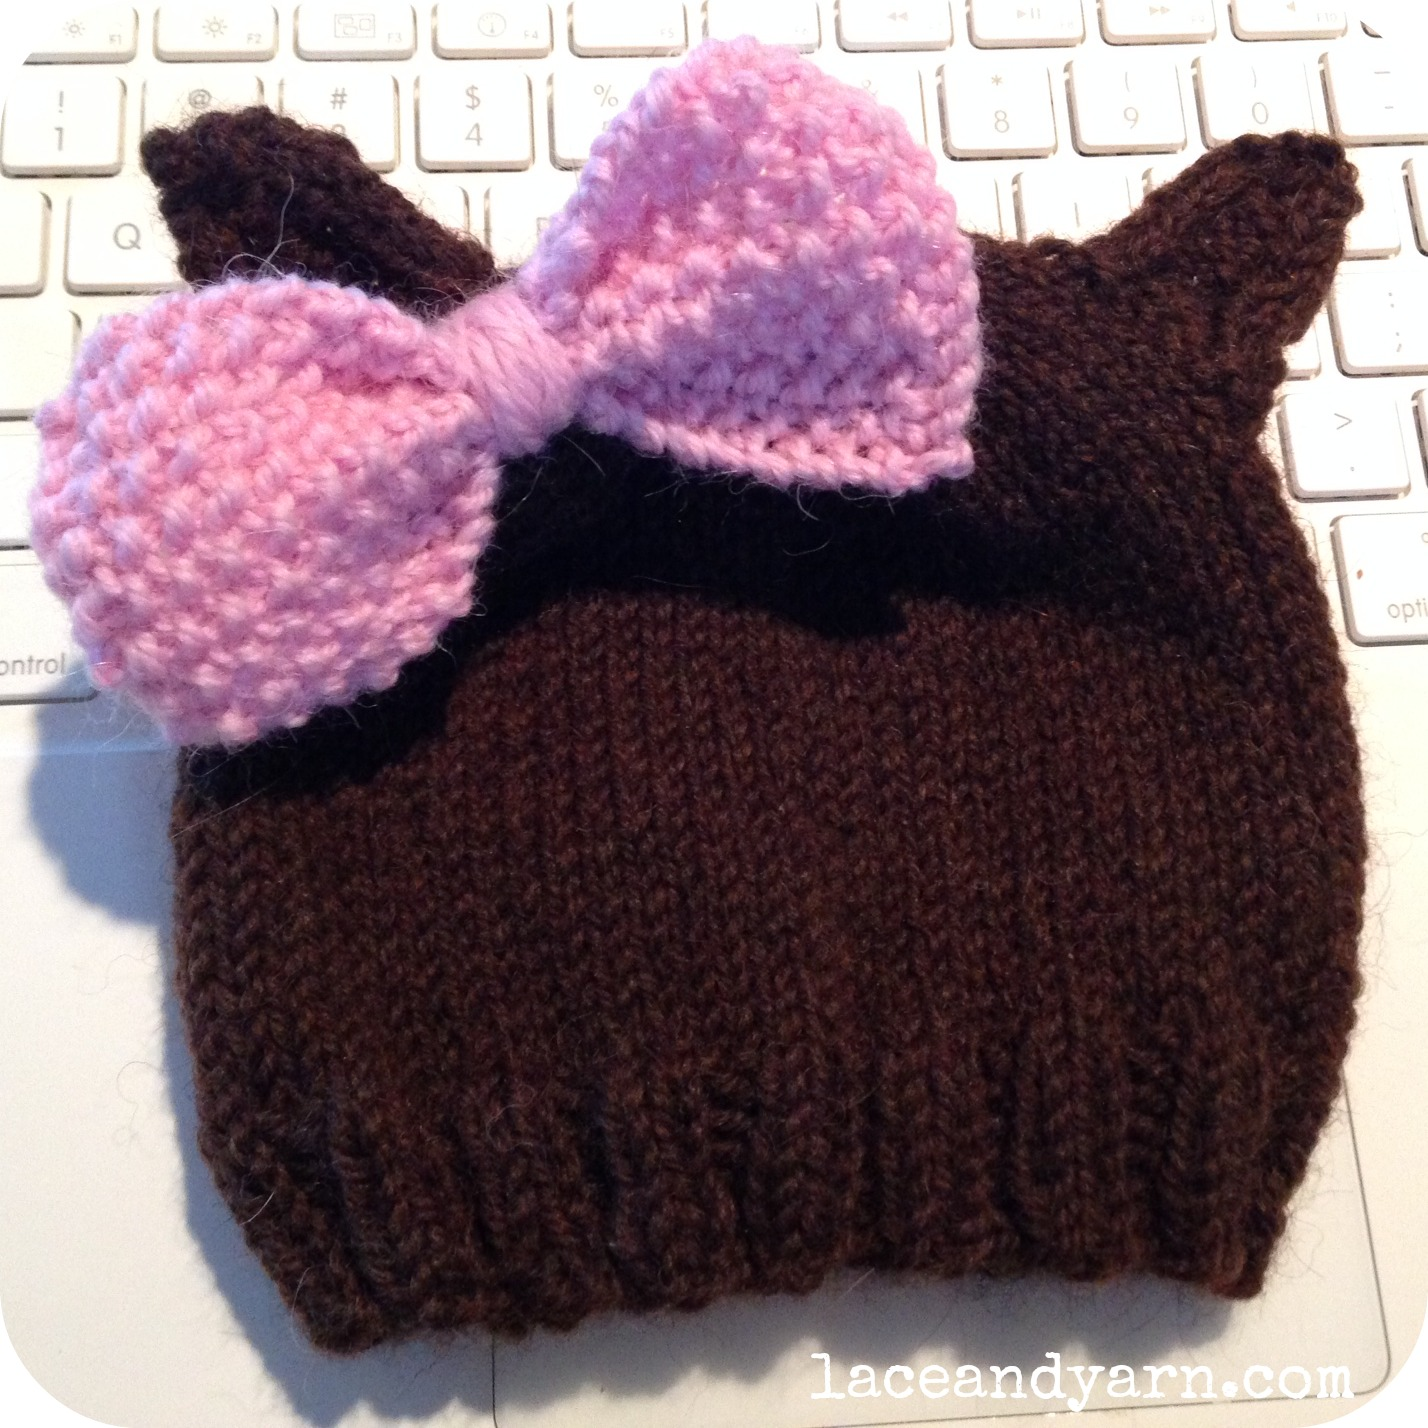 Cat ears knitting pattern : Dimcoin price in inr health